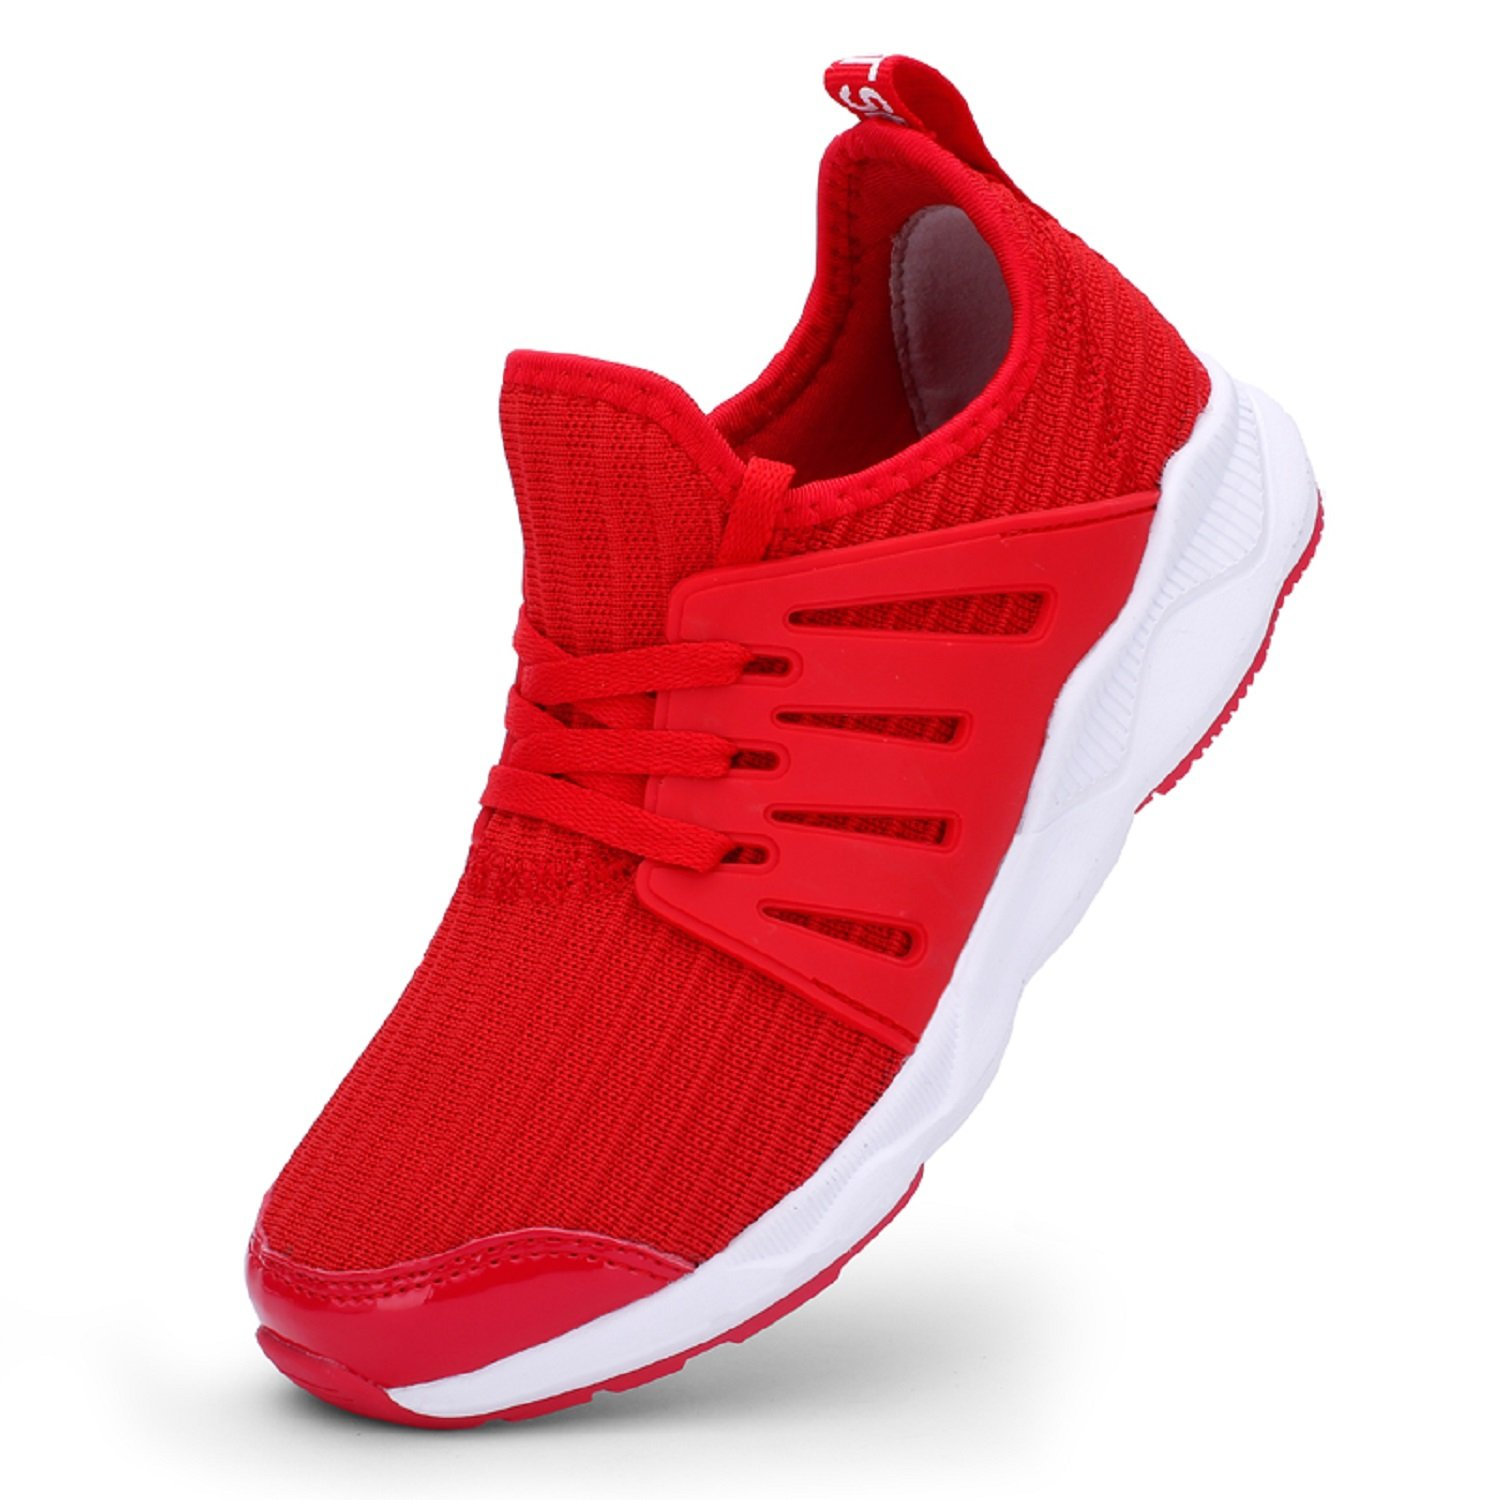 TQGOLD Kids Breathable Walking Running Shoes Boys&Girls Athletic Tennis Shoes Casual Outdoor Trainers